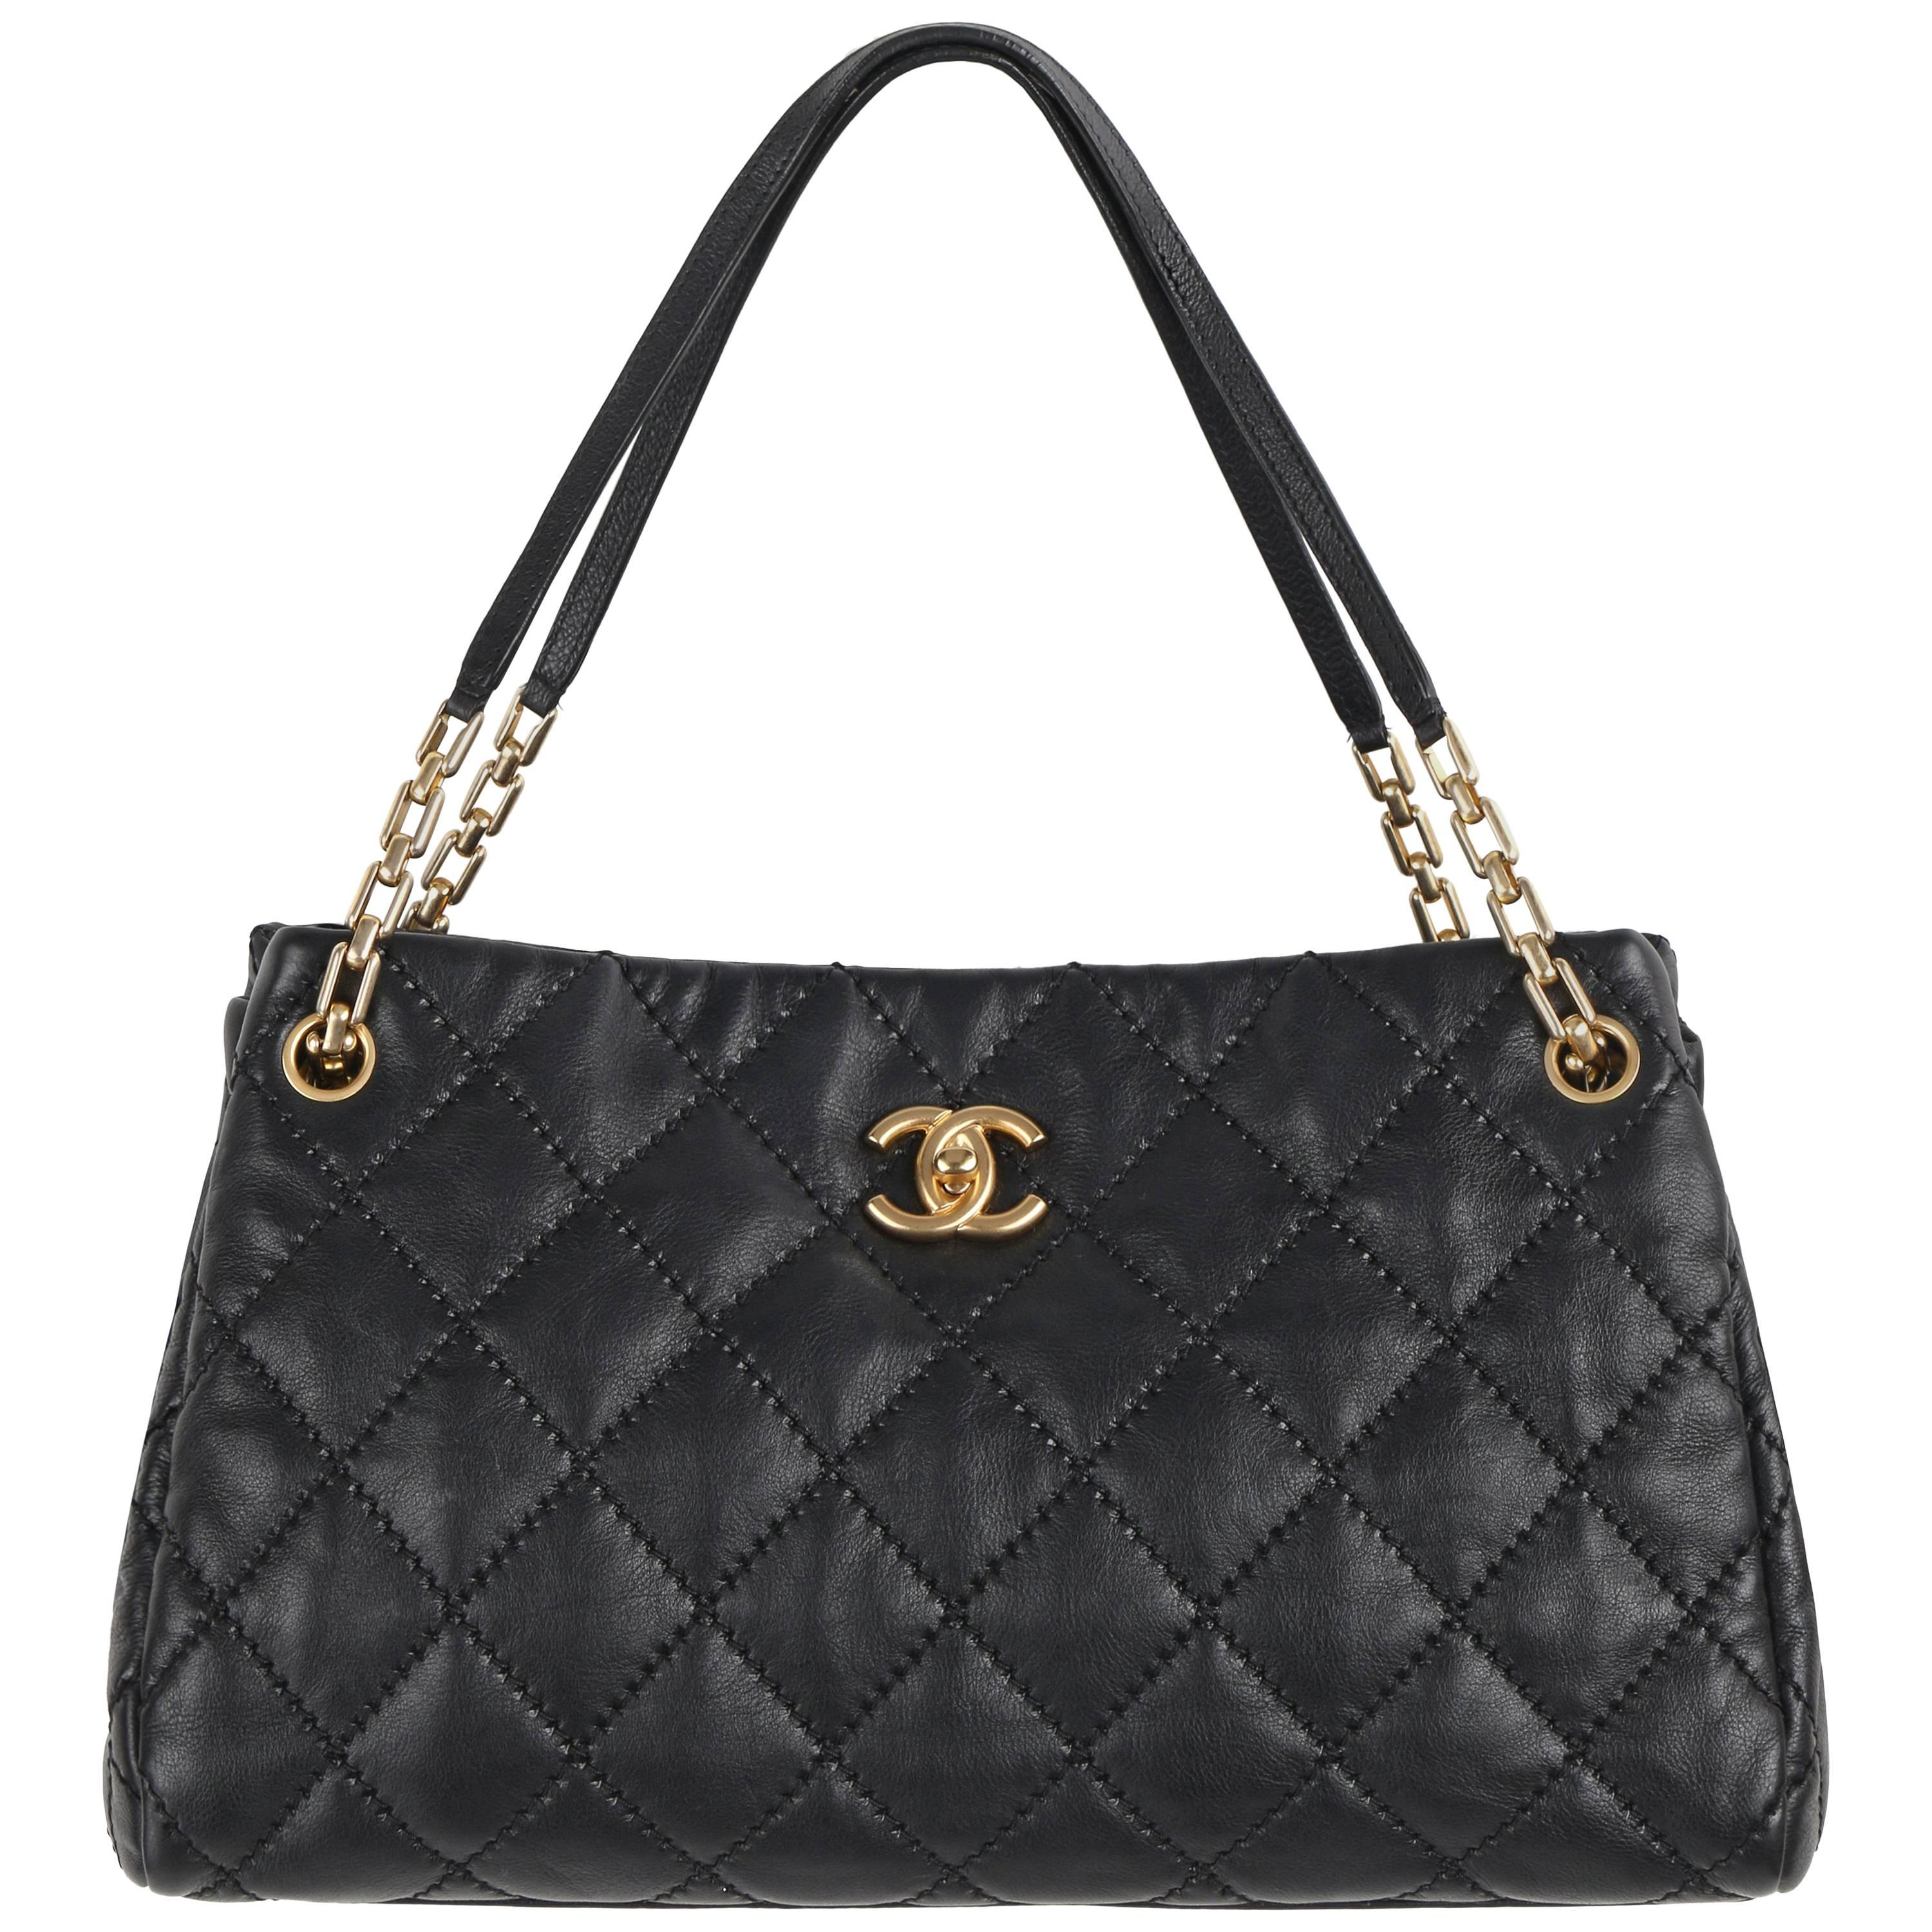 486b8231ce1c CHANEL S/S 2011 Black Quilted Leather CC Turnlock